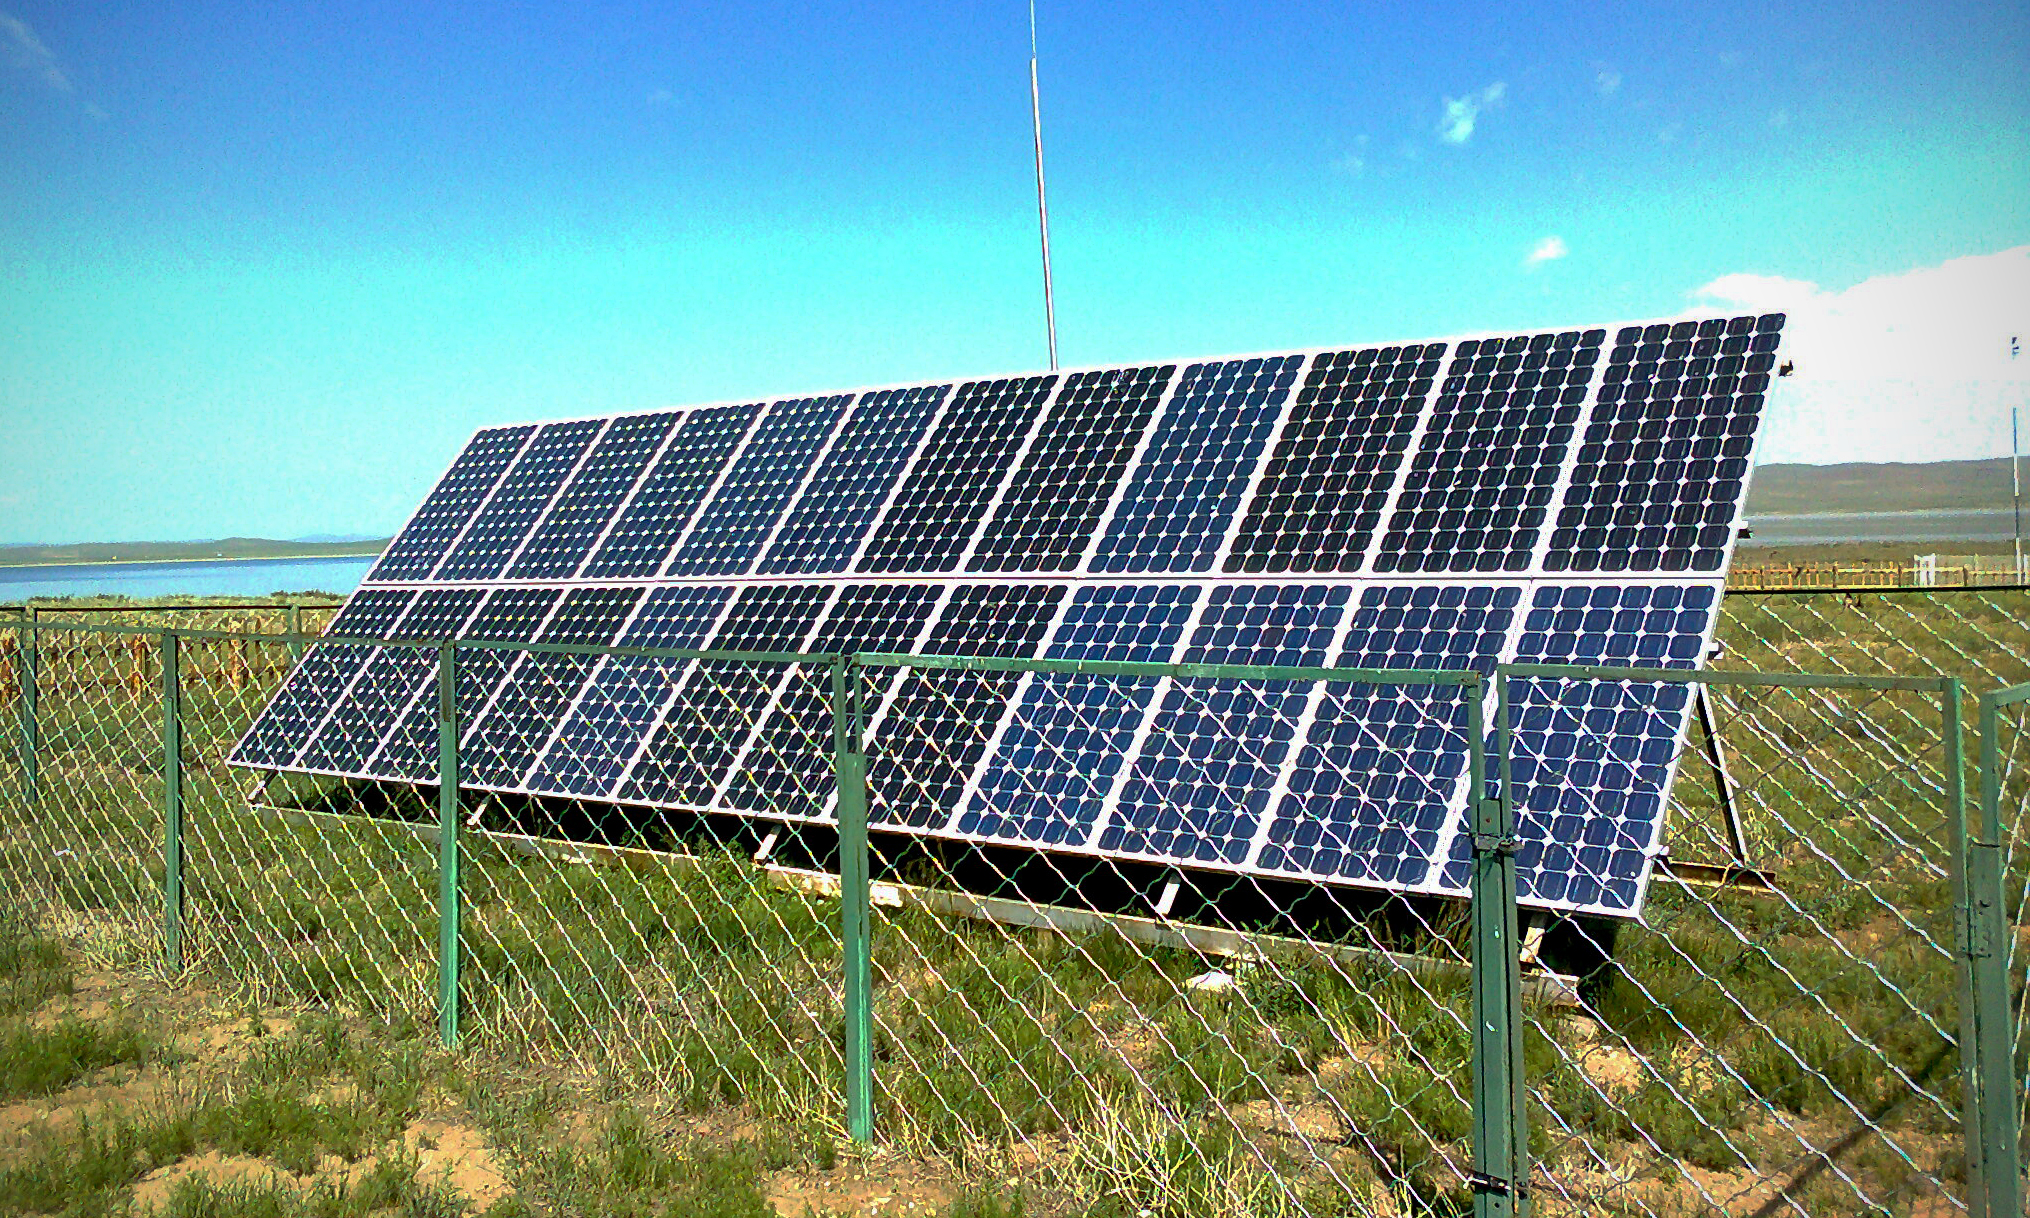 https://upload.wikimedia.org/wikipedia/commons/8/8d/Solar_panels_in_Ogiinuur.jpg